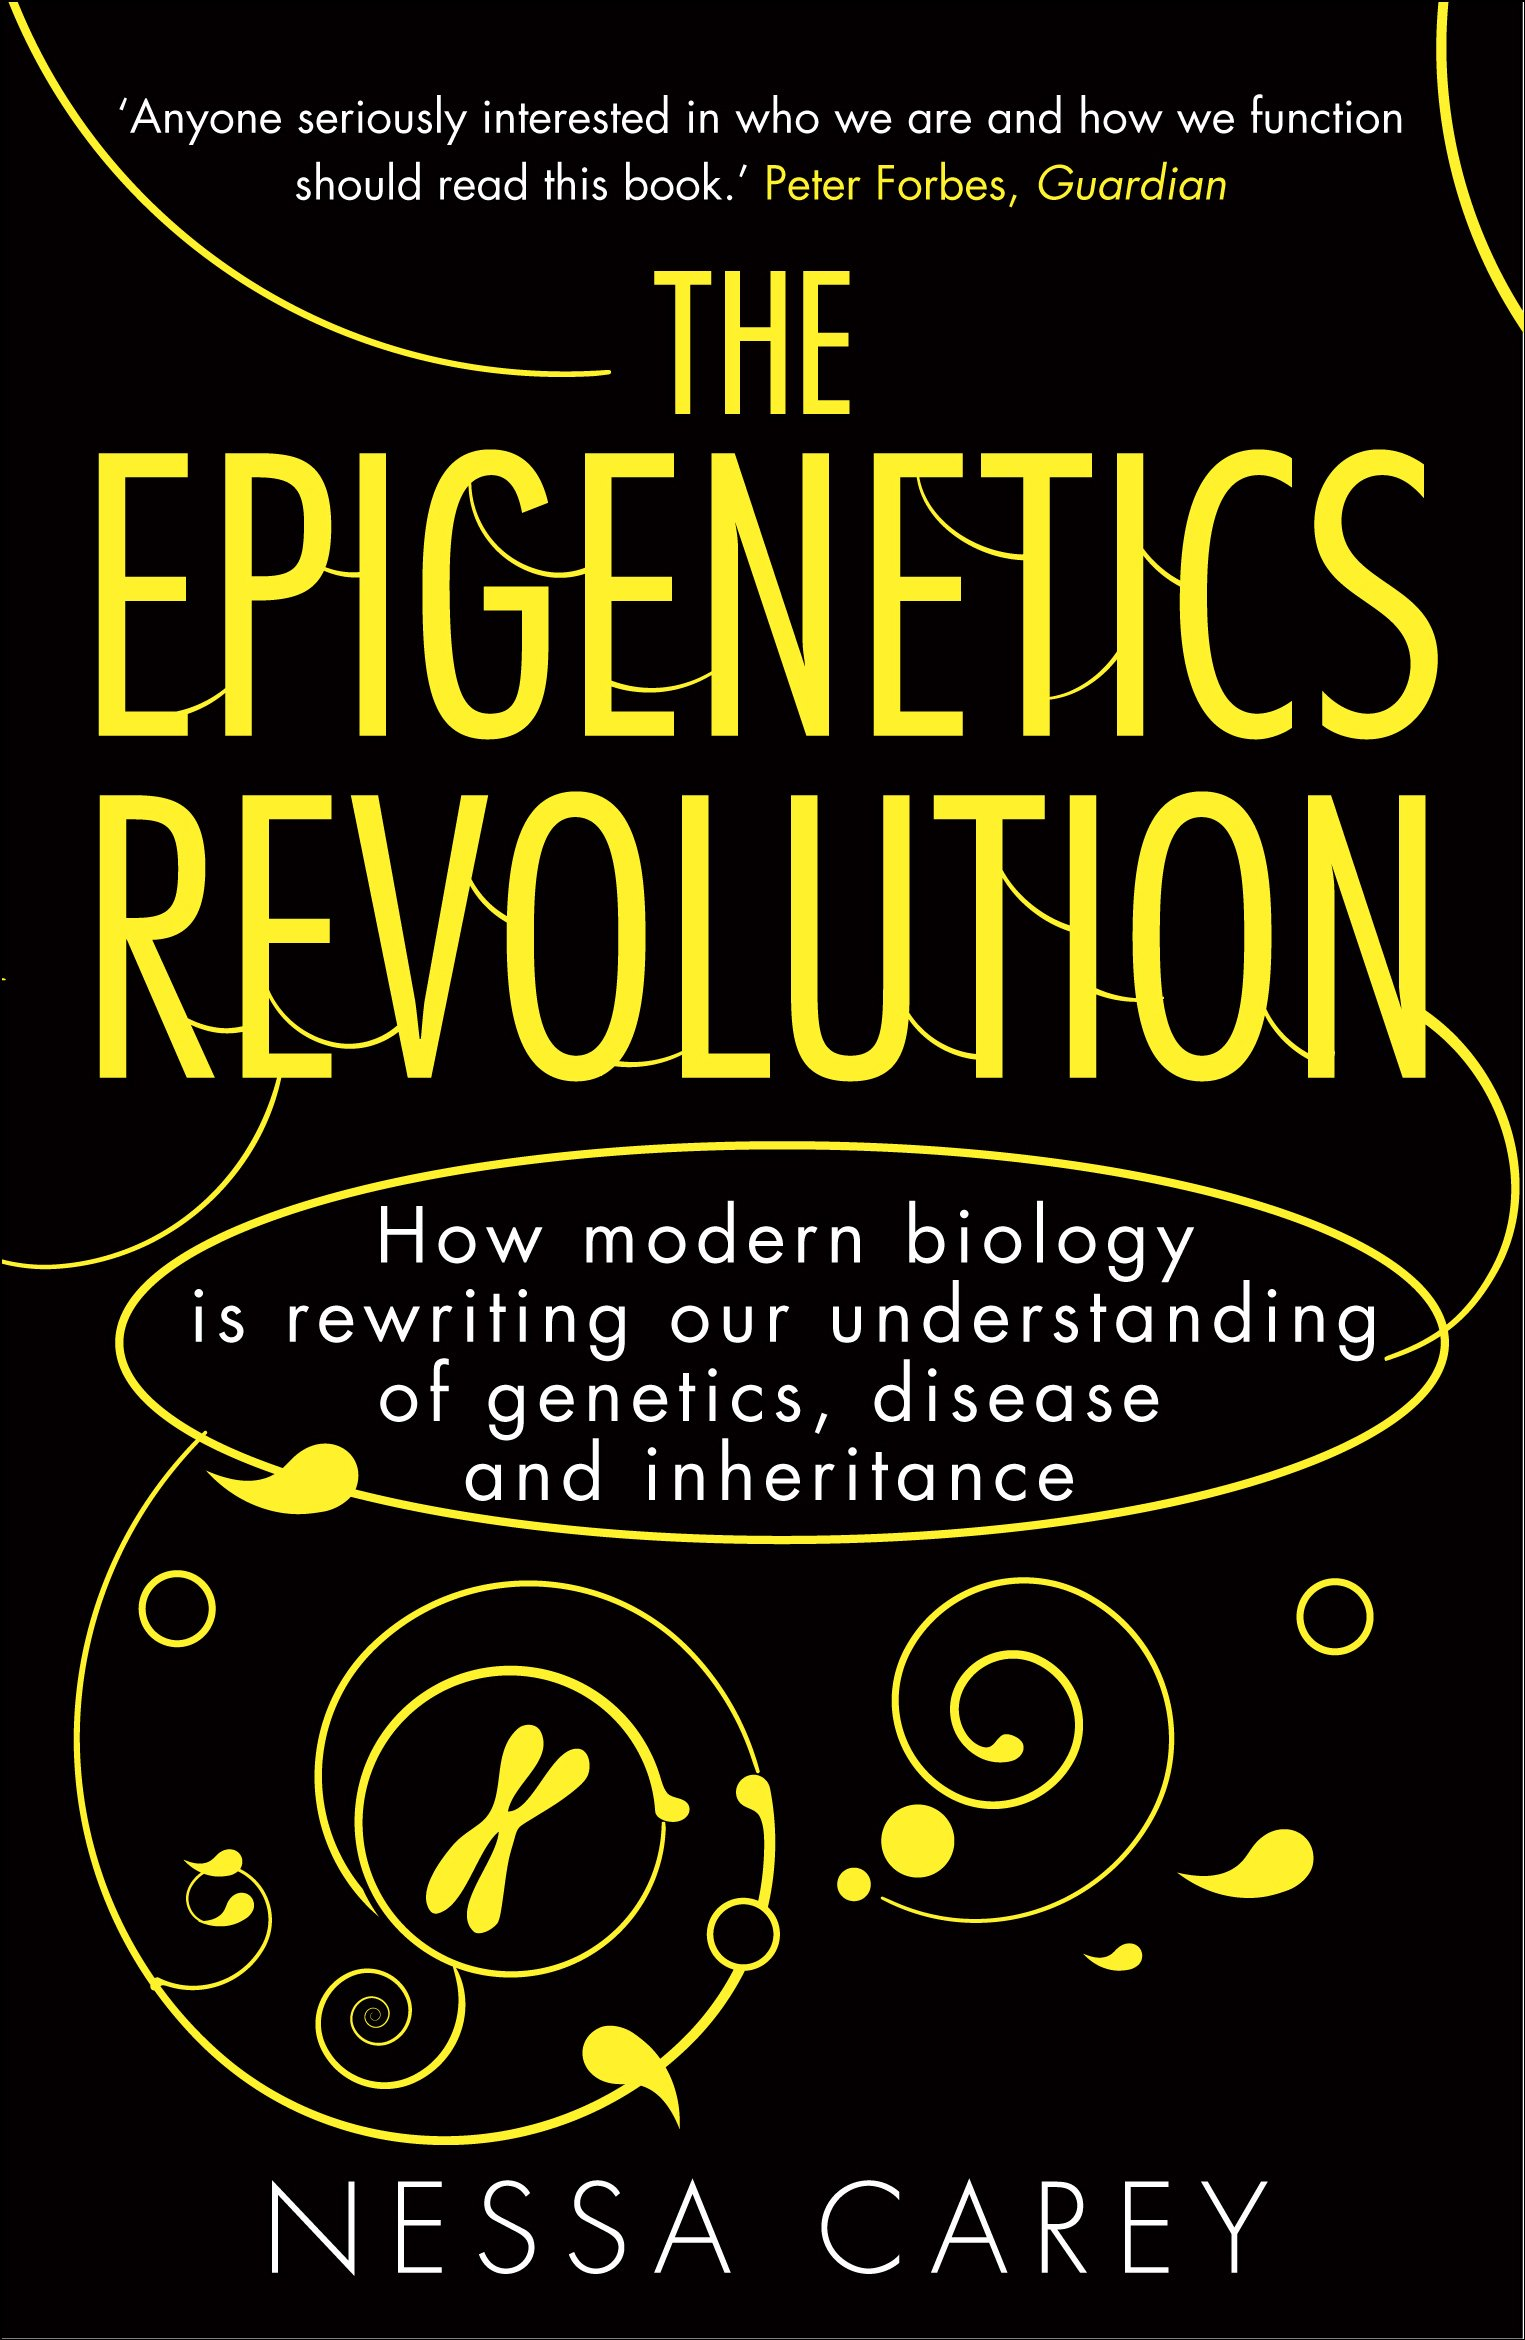 Image OfThe Epigenetics Revolution: How Modern Biology Is Rewriting Our Understanding Of Genetics, Disease And Inheritance